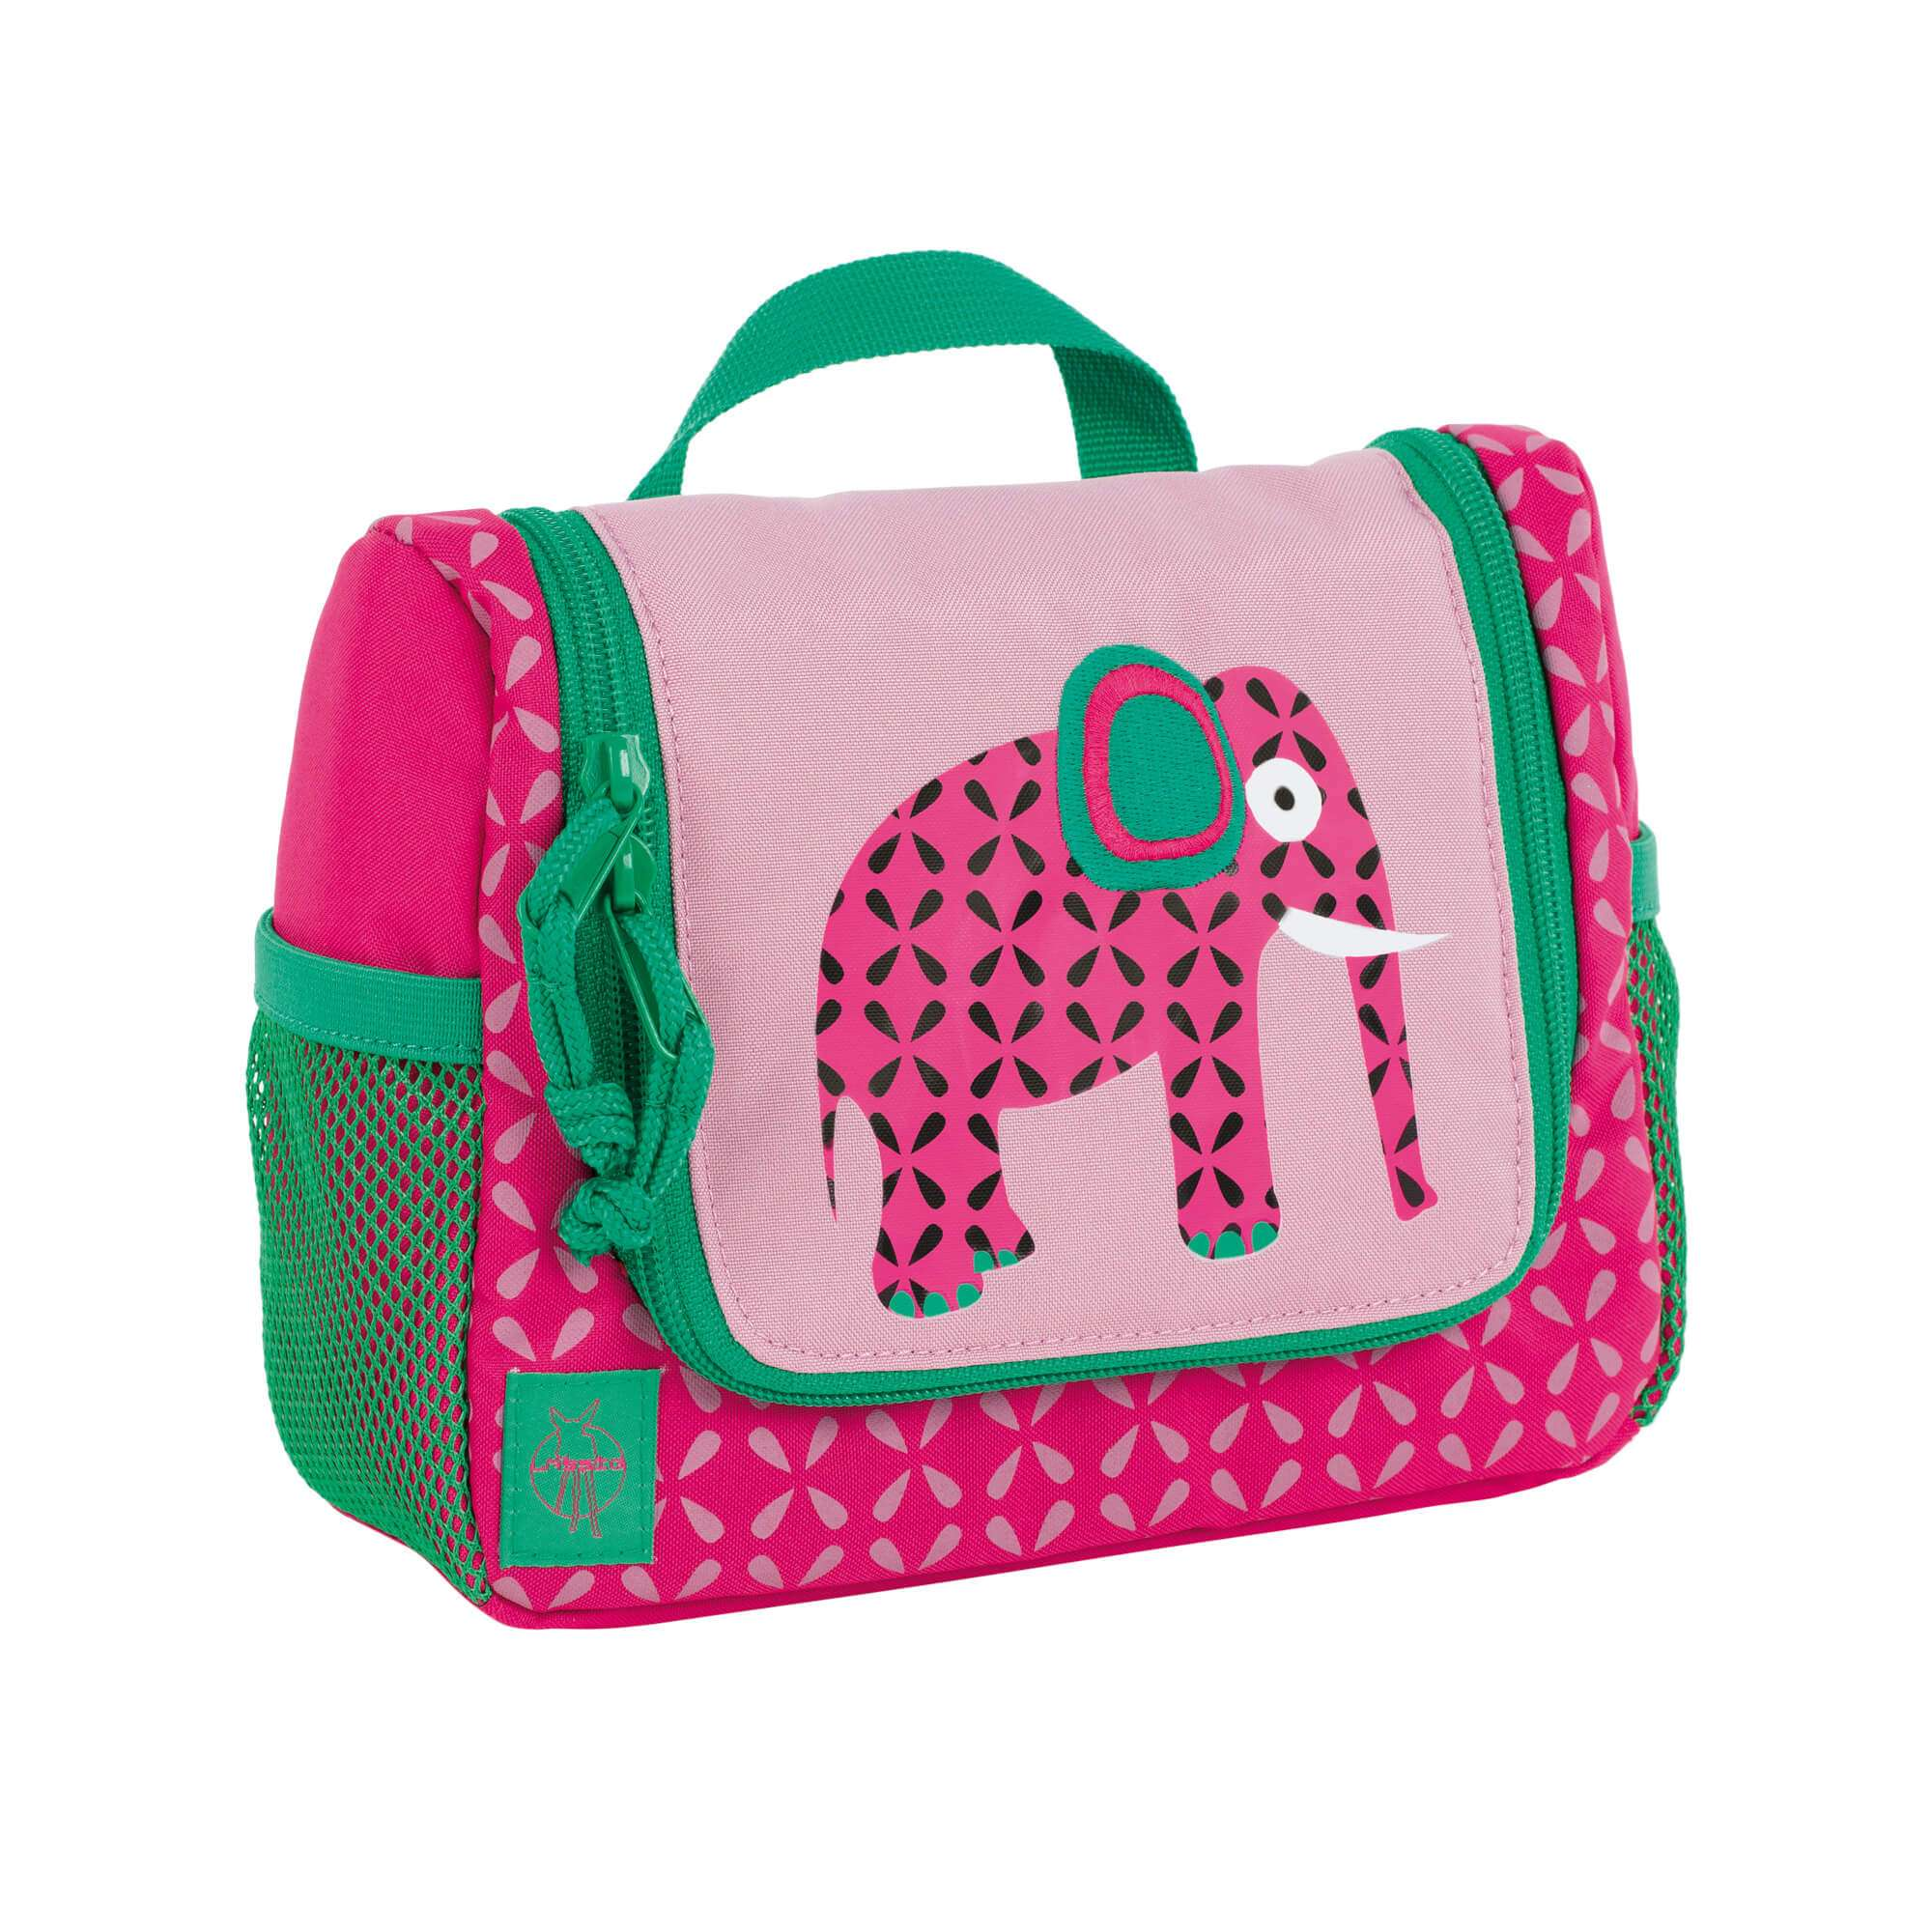 Kinder Kulturbeutel Kulturbeutel Mini Washbag Wildlife Elephant